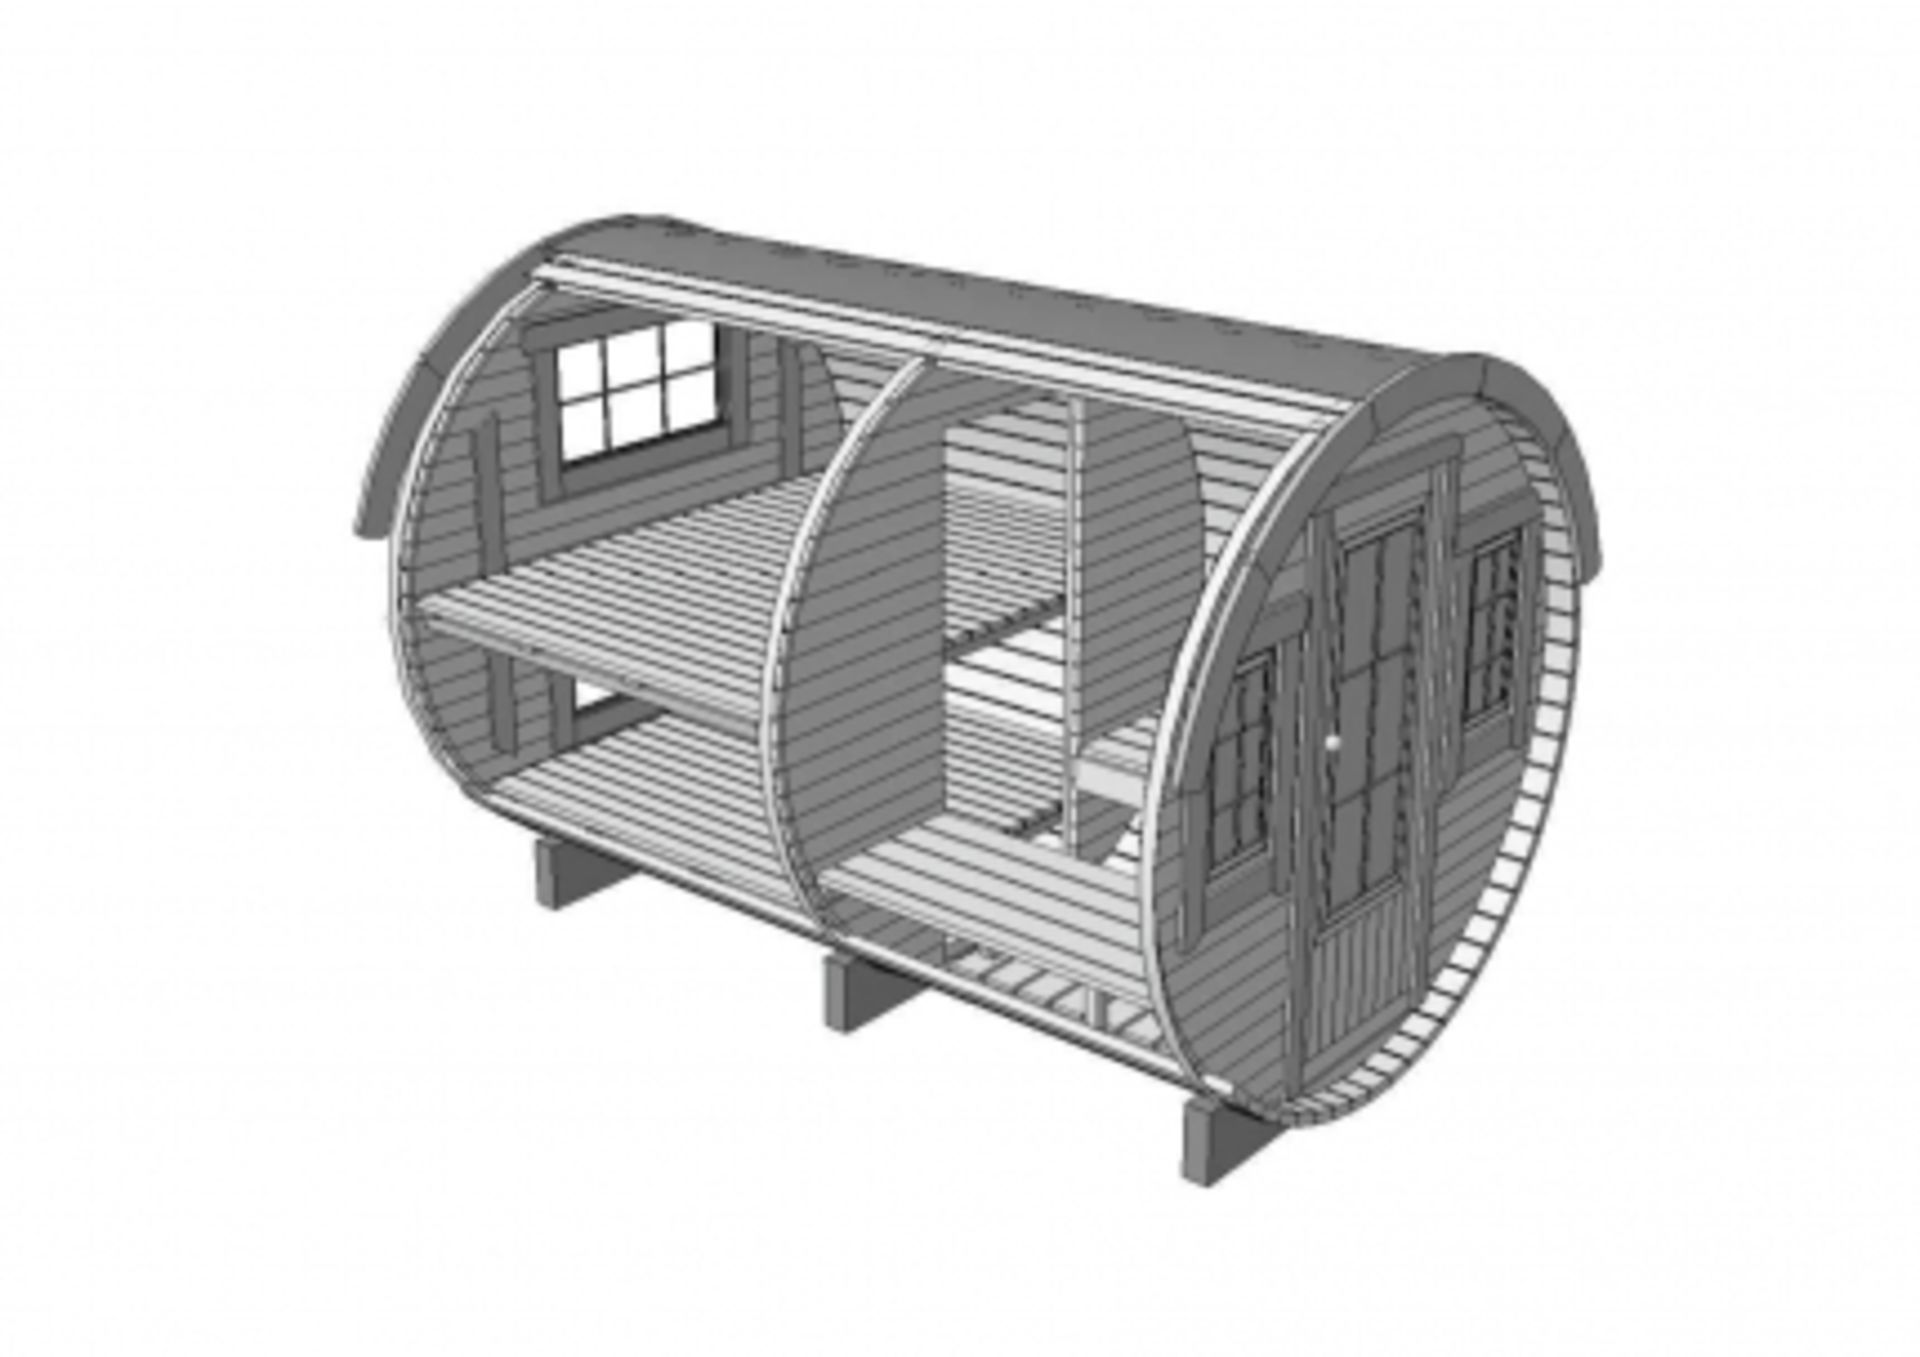 Lot 18020 - V Brand New 2.2 x 3.3m Barrel For Sleeping - Sleeping & Sitting Rooms Inside - Sleeping Room With